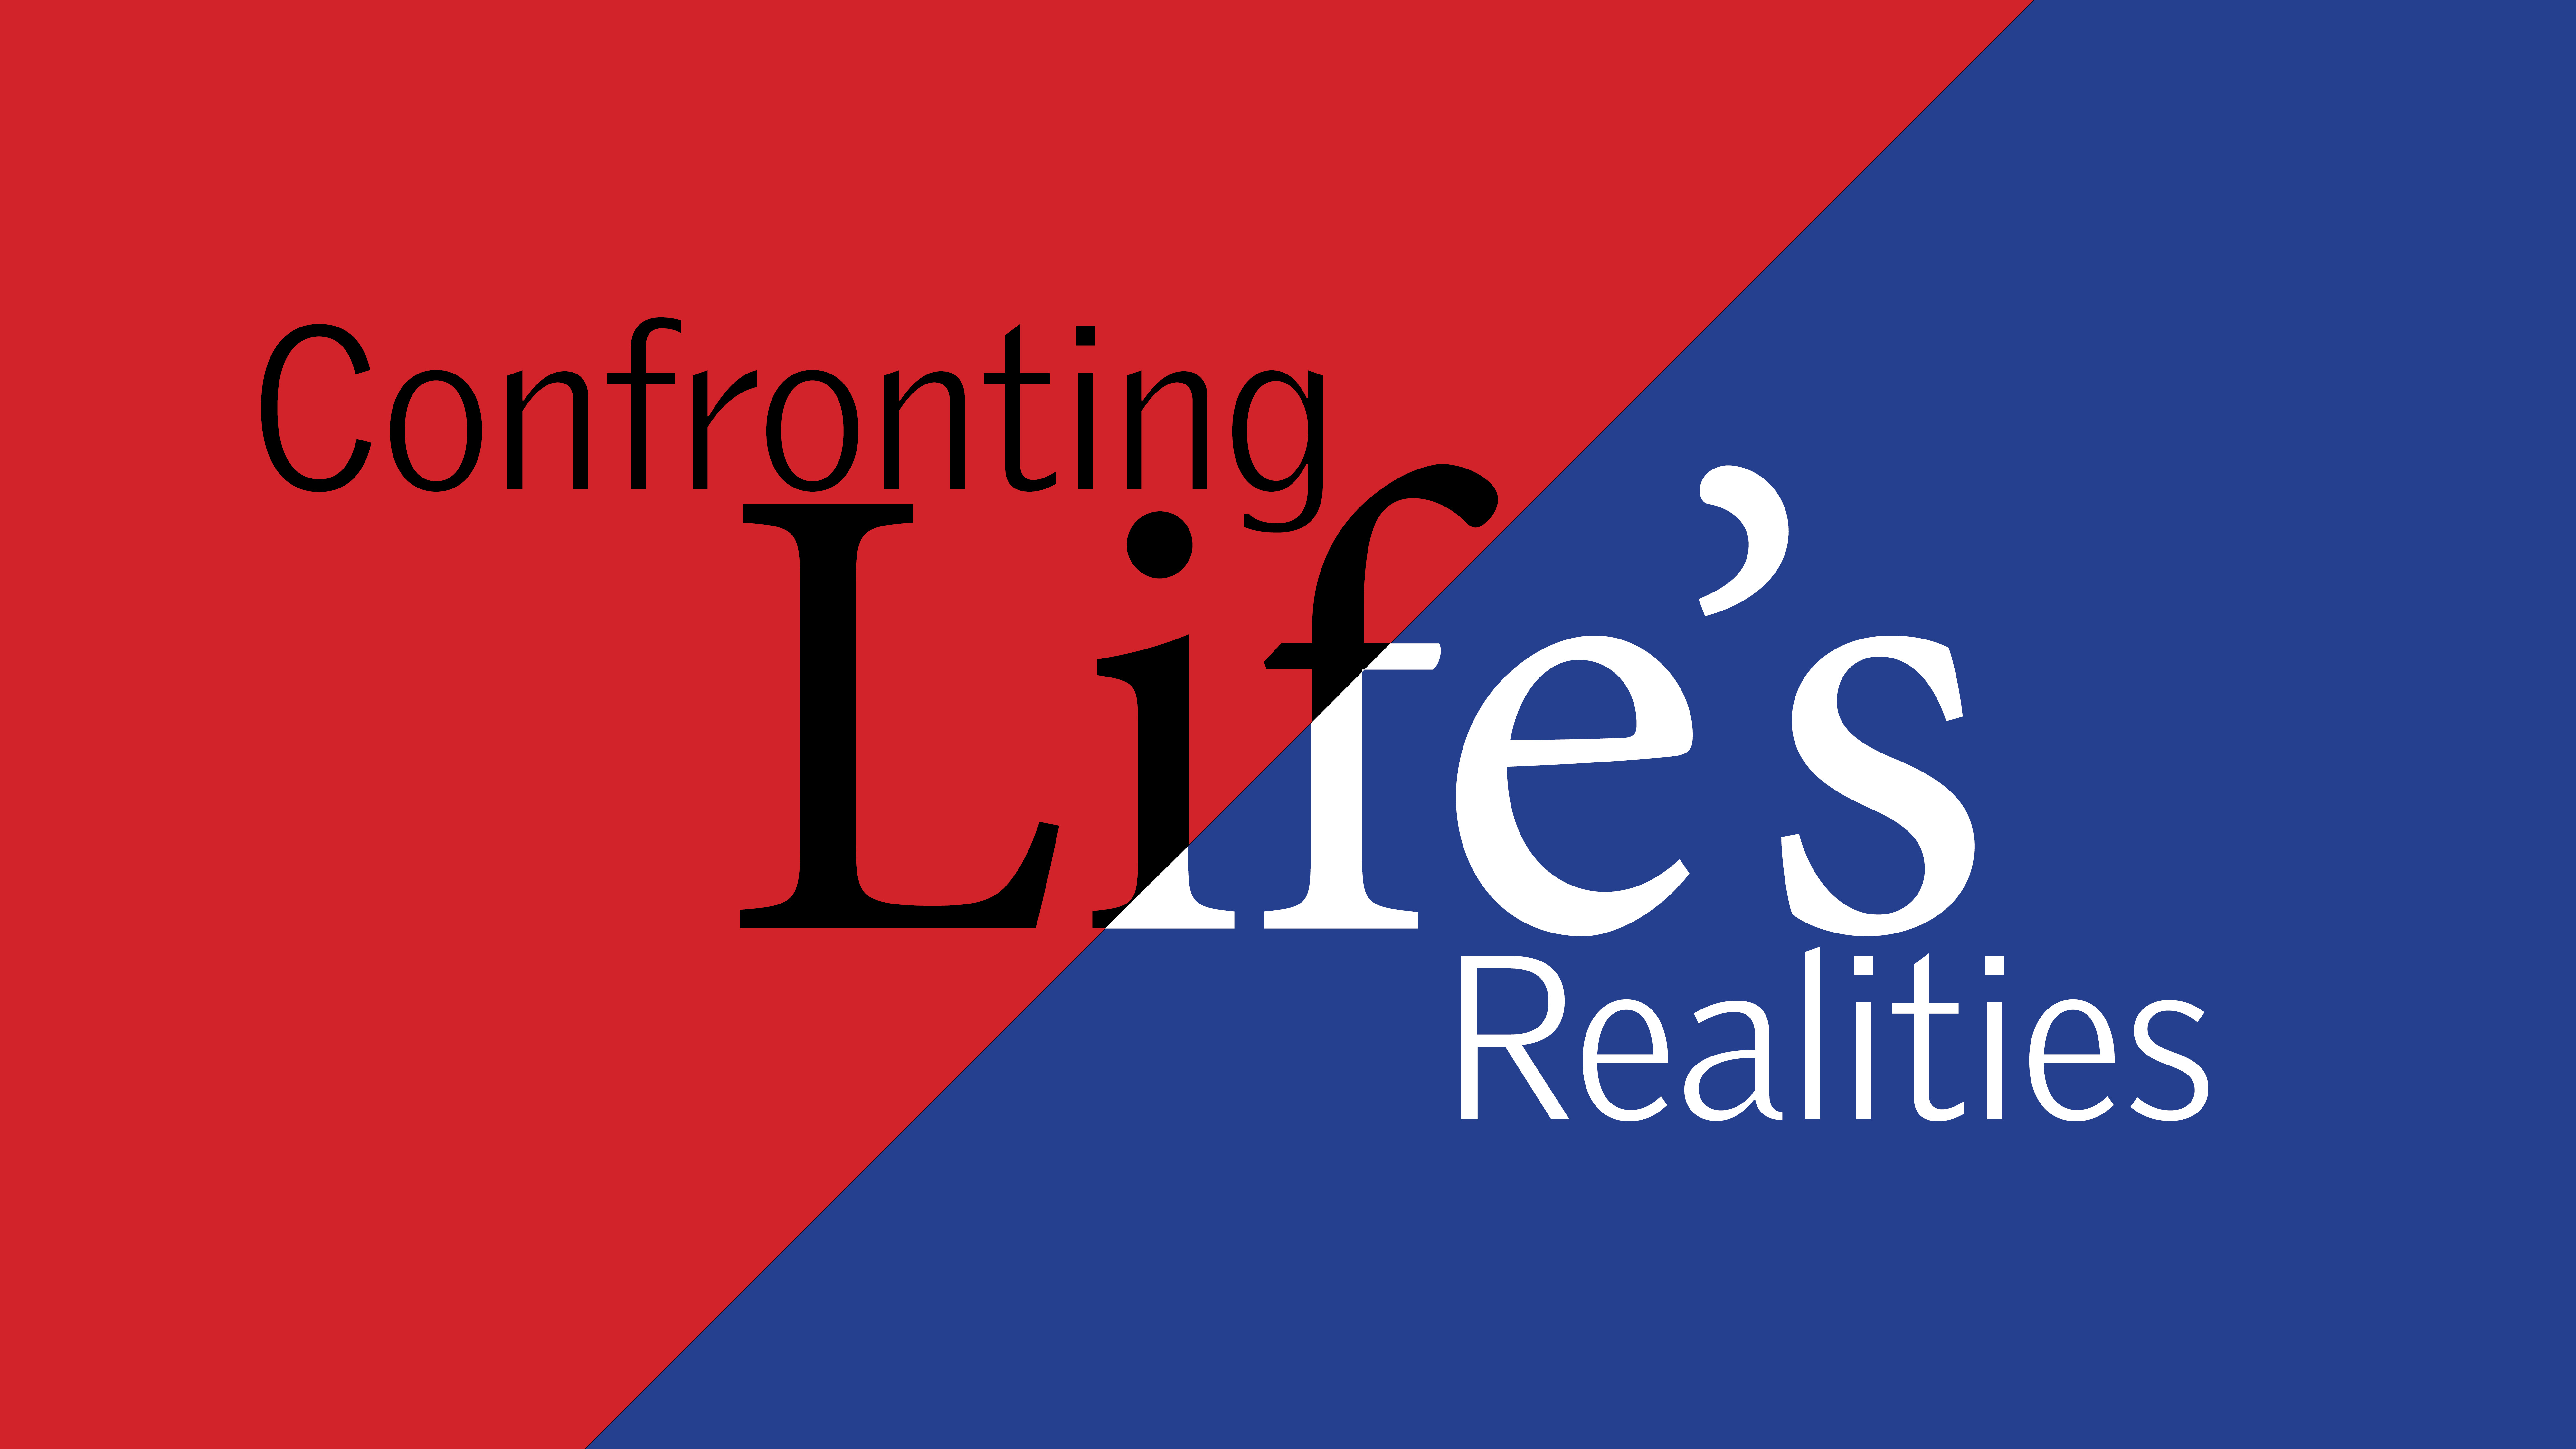 http://www.mvbcnow.org/uploads/ConfrontingLifesRealities-app-wide.jpg